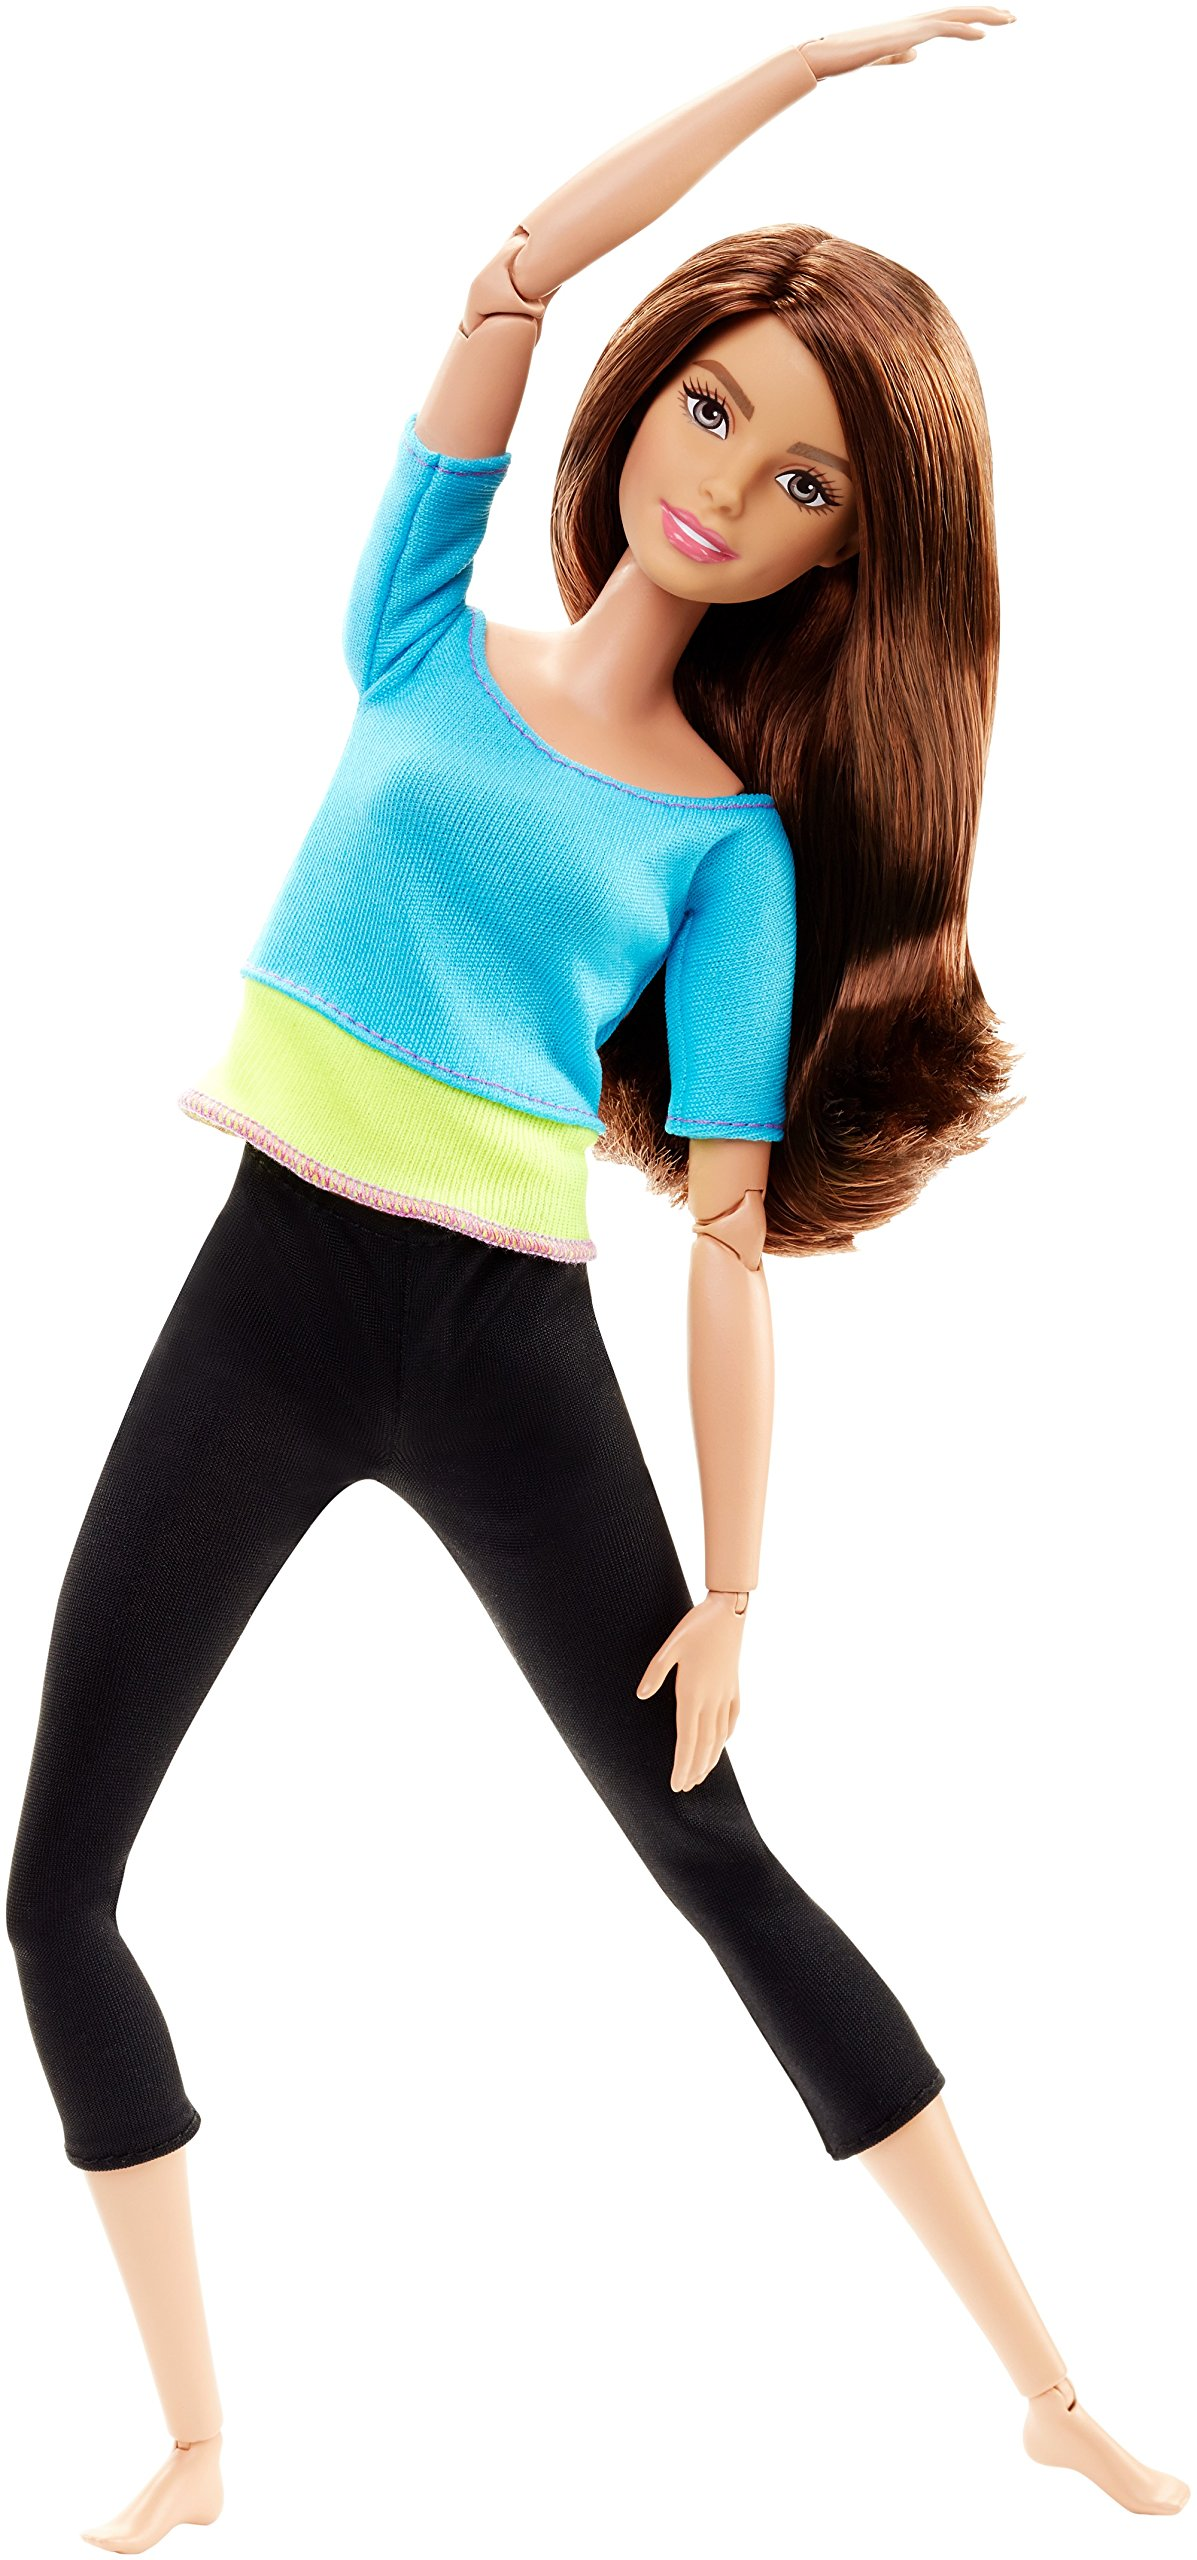 Barbie Made to Move Doll, Blue Top